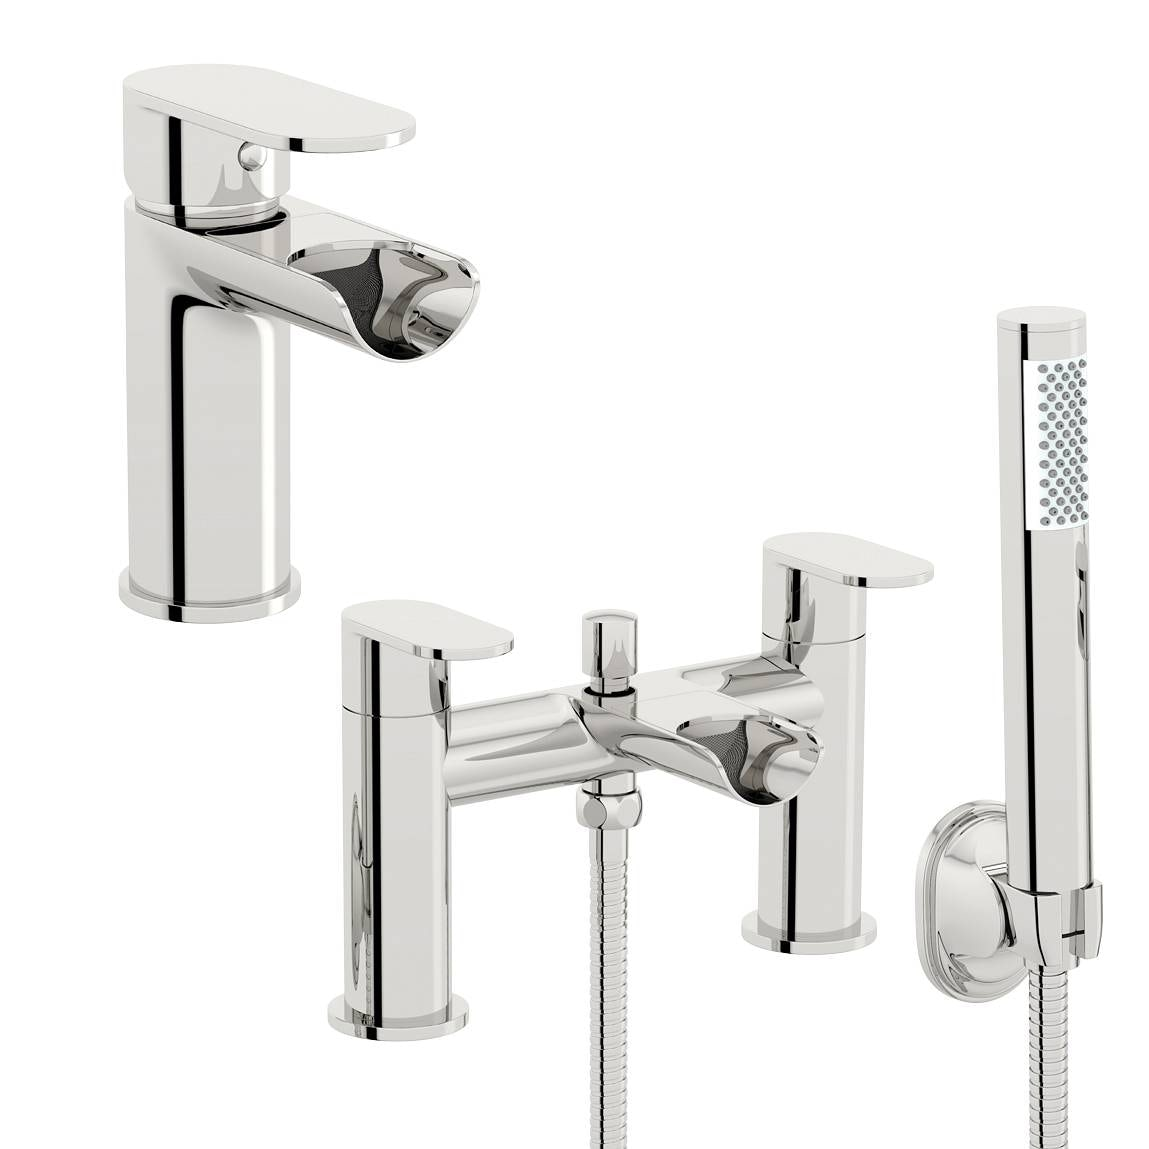 Orchard Eden basin and bath shower mixer tap pack ...